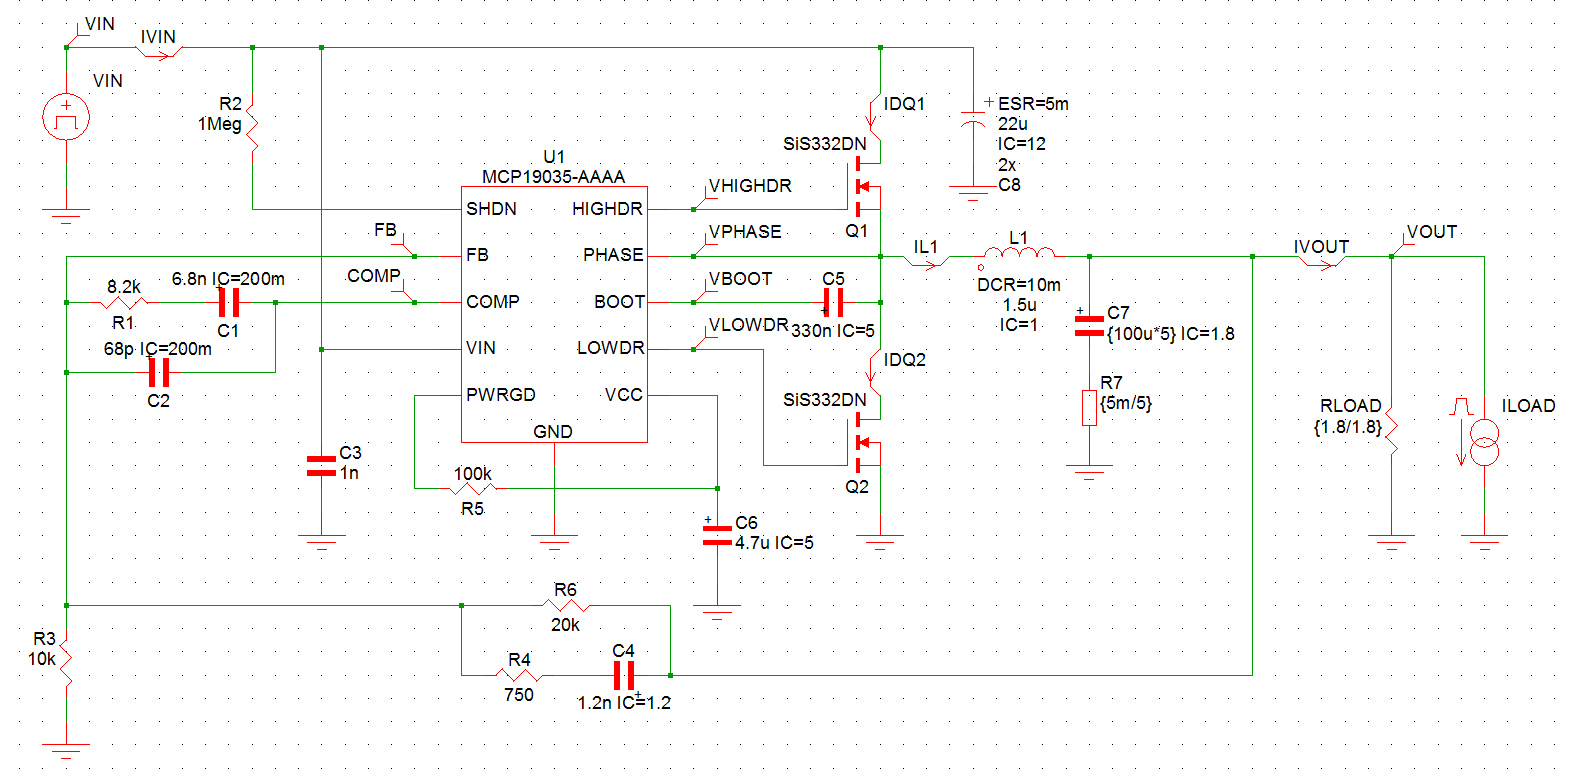 Mplab Mindi Analog Simulator Microchip Technology Is An Application For Design And Simulation Of Electronic Circuits Schematic